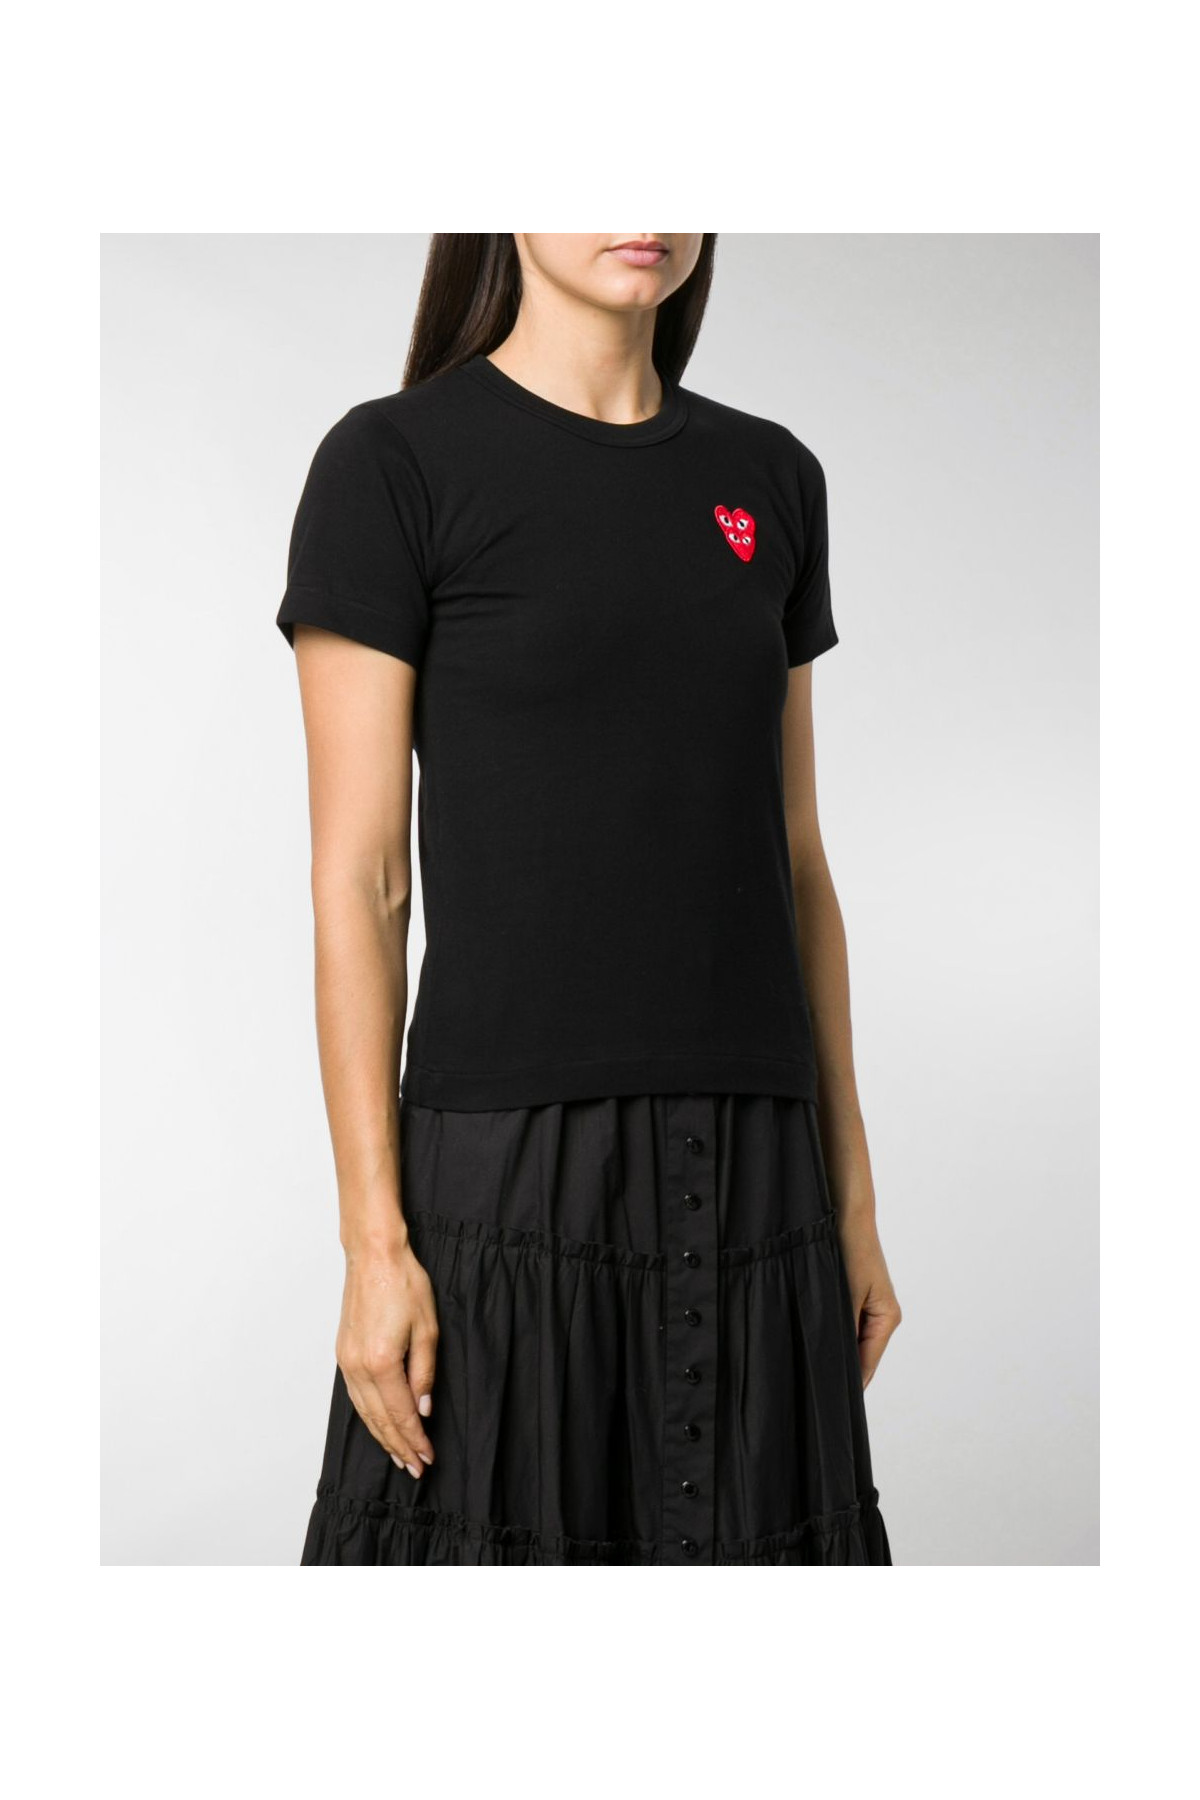 Ladies T-Shirt Multi Red Red Heart P1T287